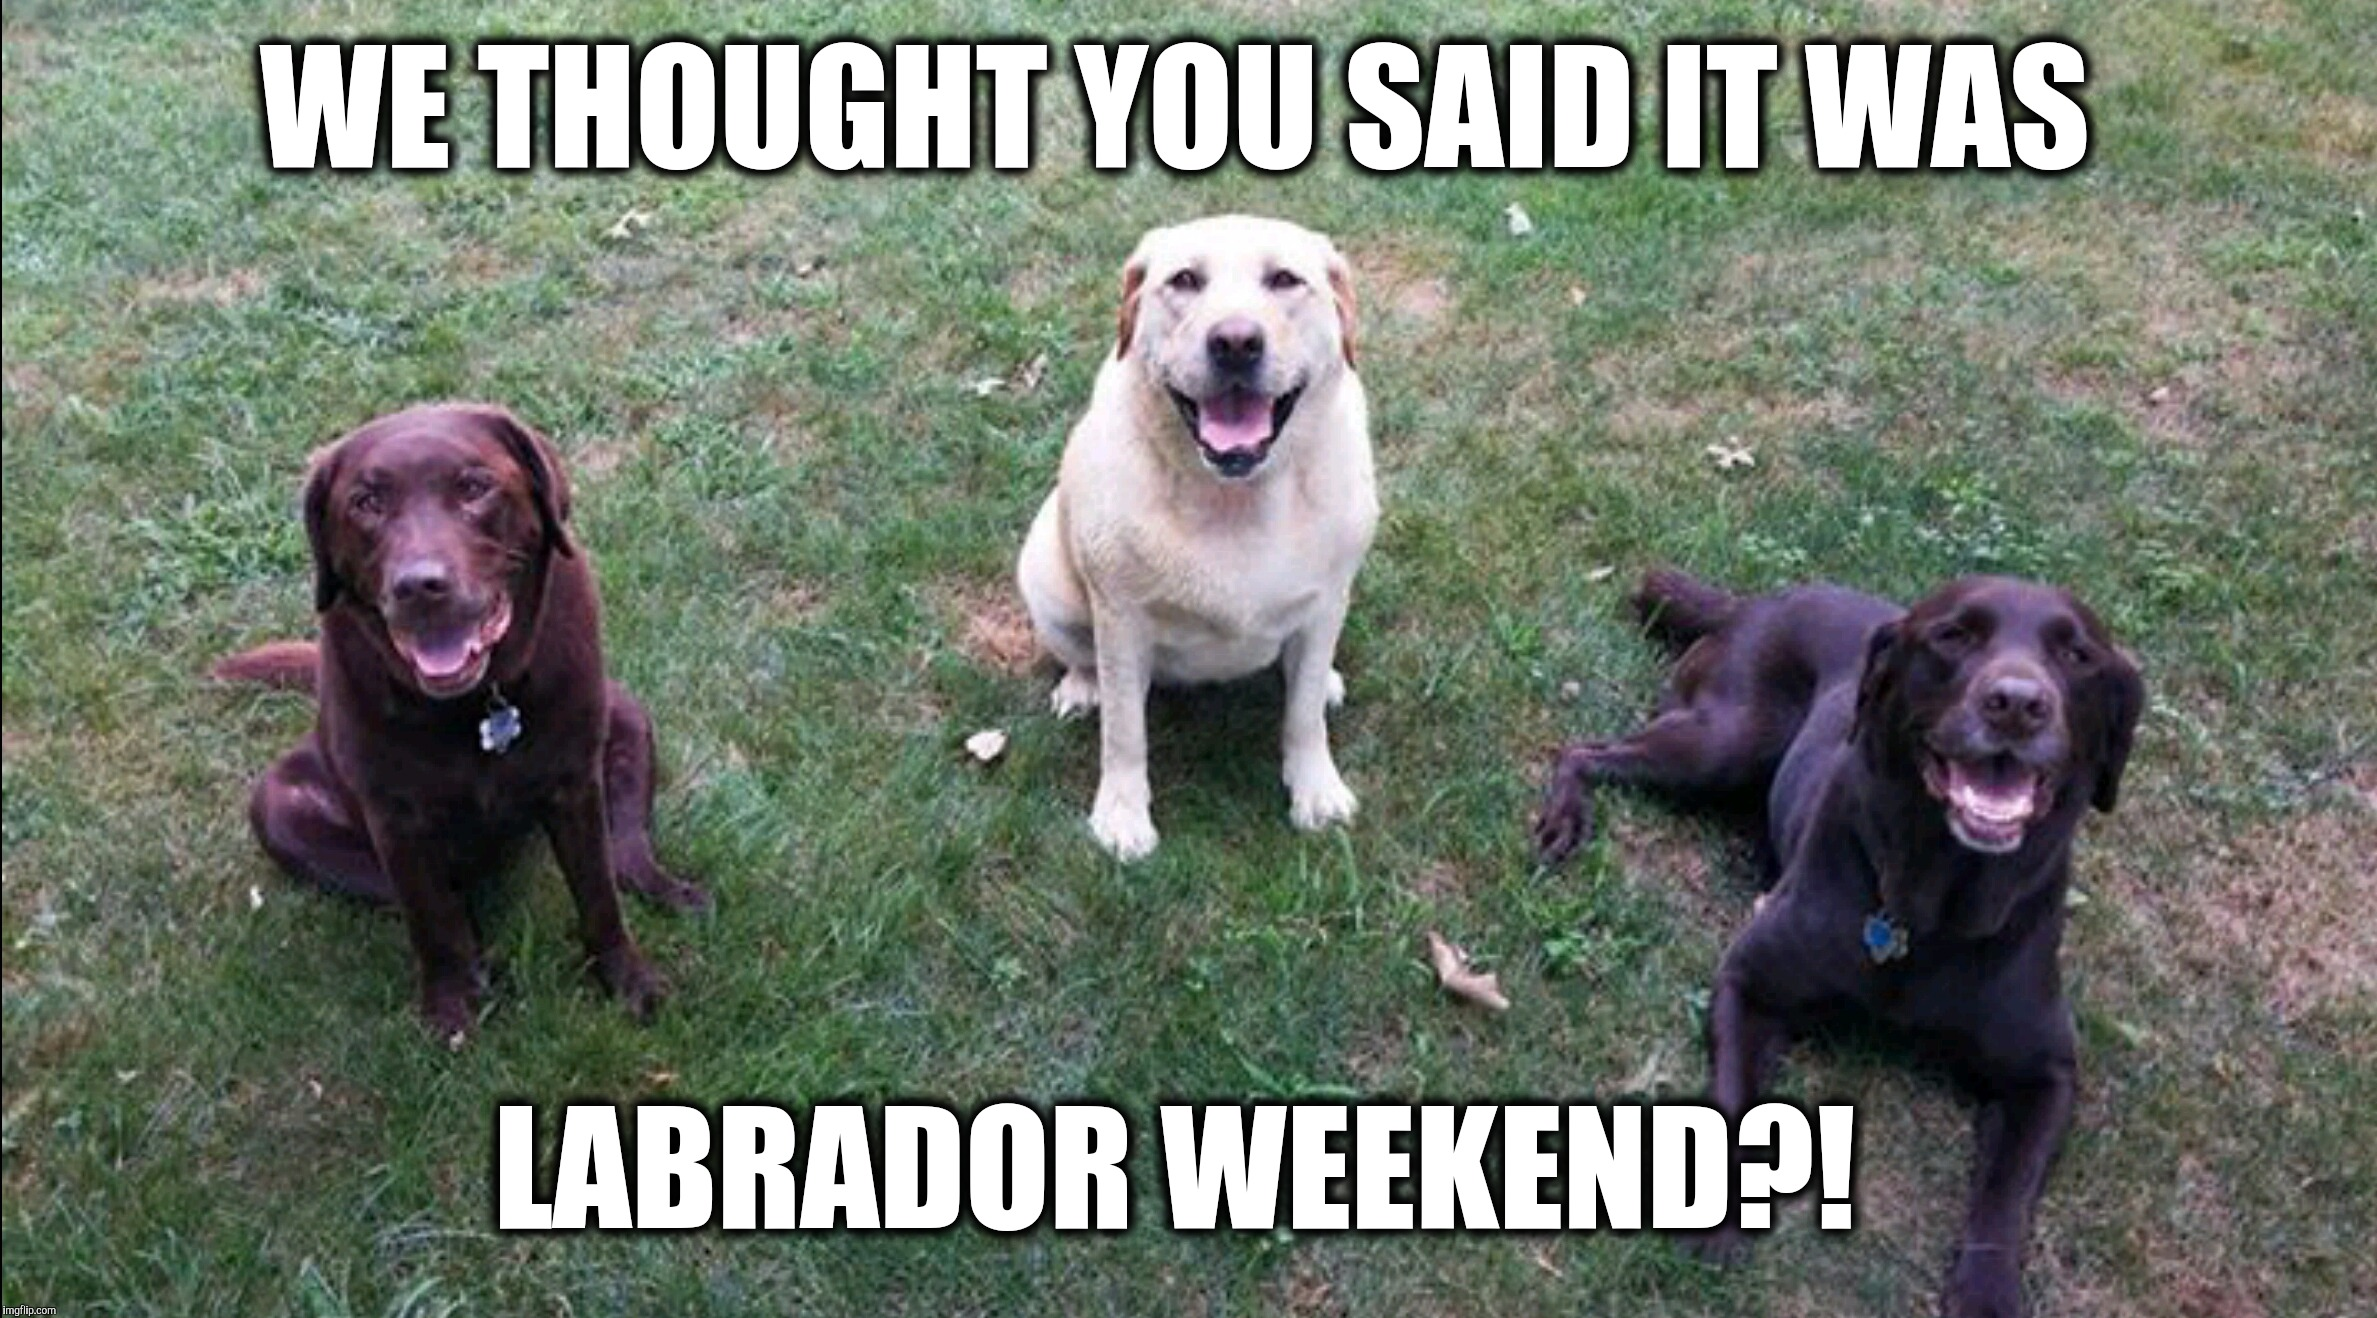 We thought you said it was Labrador weekend?!  | WE THOUGHT YOU SAID IT WAS LABRADOR WEEKEND?! | image tagged in labs,chuckie the chocolate lab,labor day,labrador,weekend,holiday | made w/ Imgflip meme maker